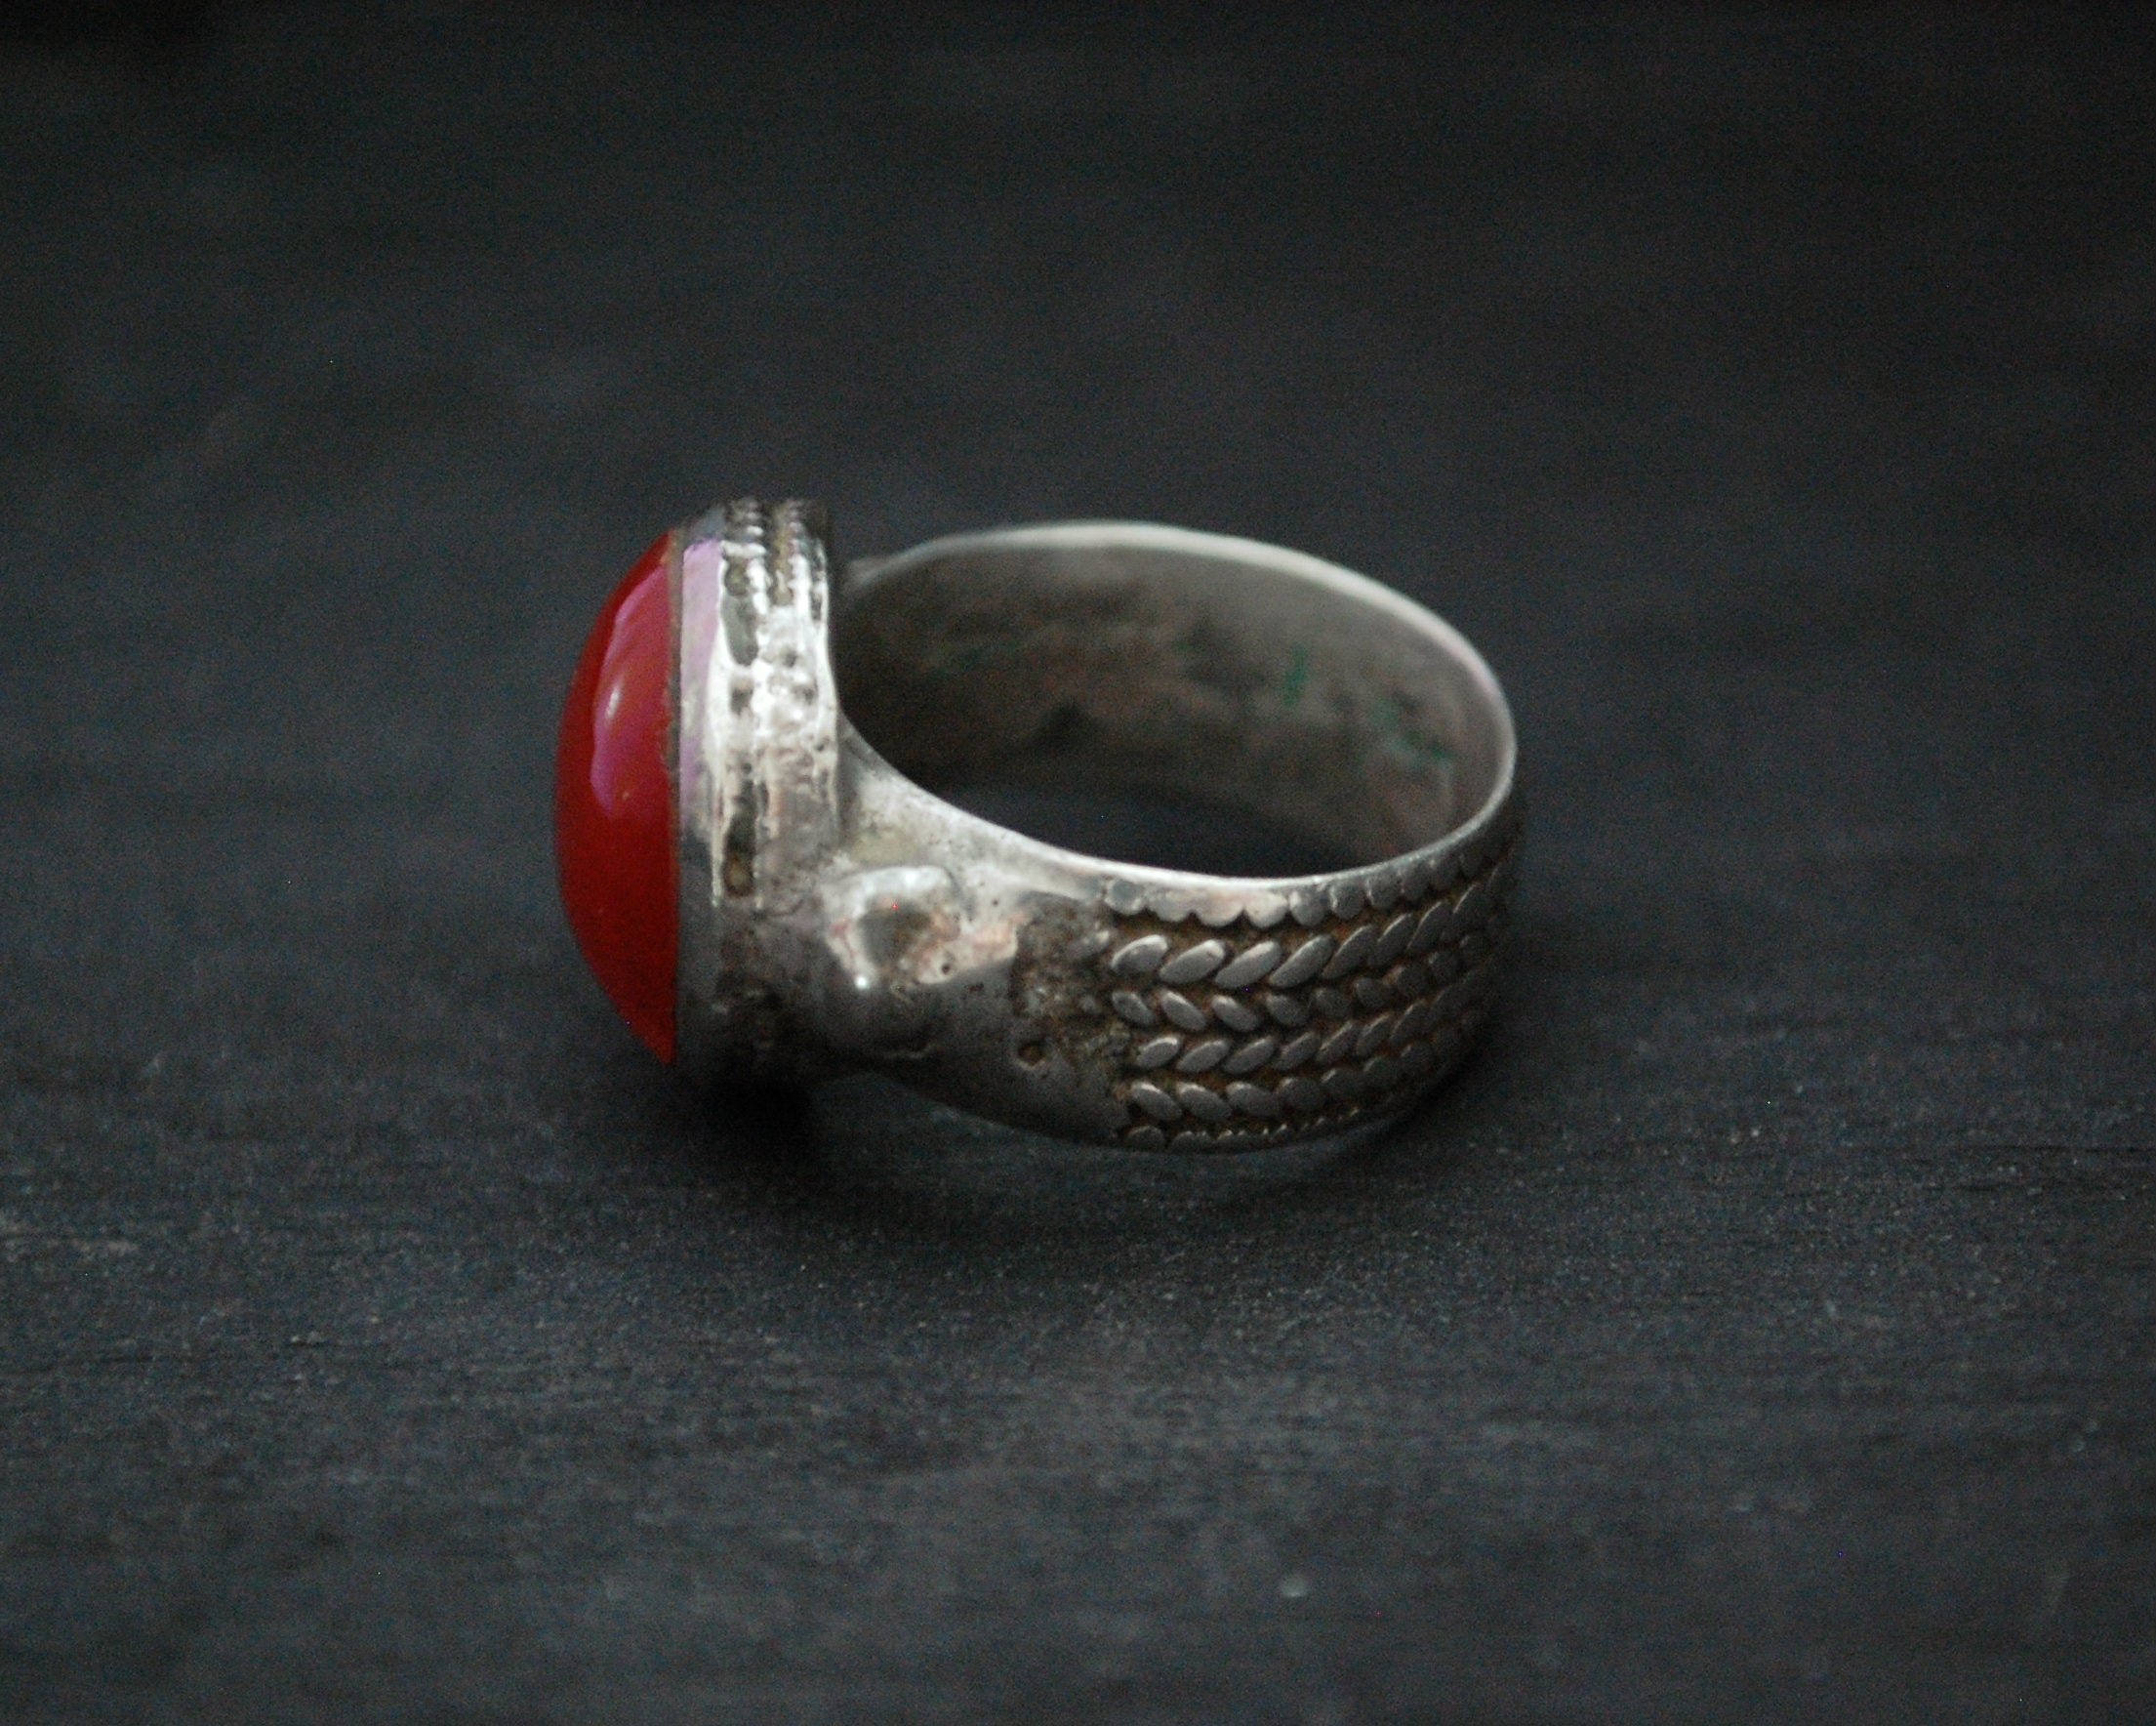 Antique Afghani Carnelian Ring - Size 8.25